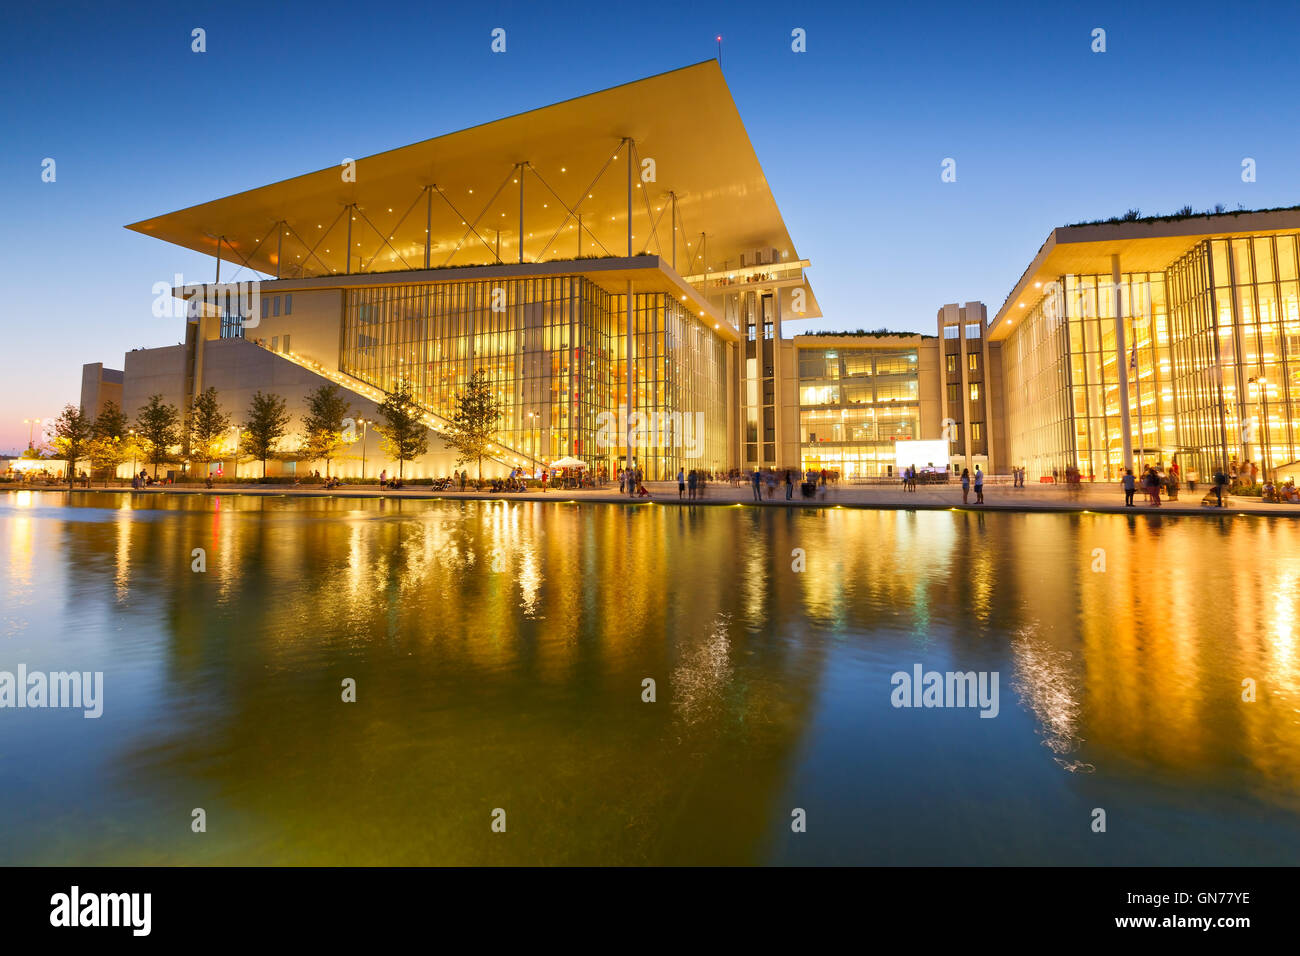 Ansicht von Stavros Niarchos Foundation Cultural Center in Athen. Stockbild